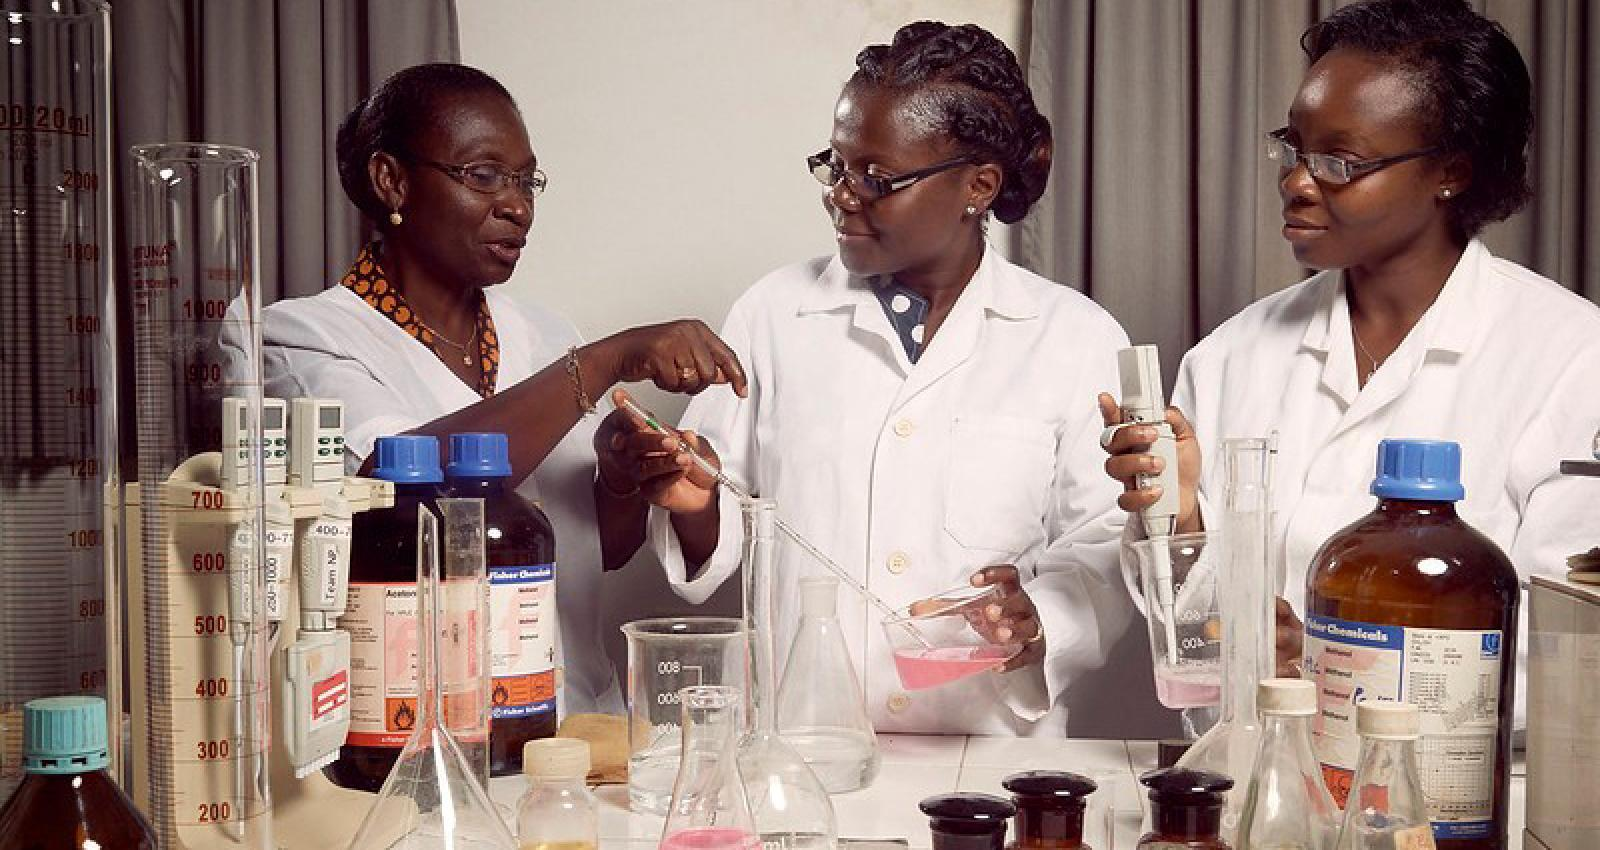 "Photo: © Stephan Gladieu / World Bank. Prof. Amivi Kafui Tete-Benissan (left) teaches cell biology and biochemistry at the University of Lomé. She's also a vocal activist who encourages girls to pursue science as a career path. ""Female students represent only 10 percent of our student body in science and engineering,"" she says sadly."